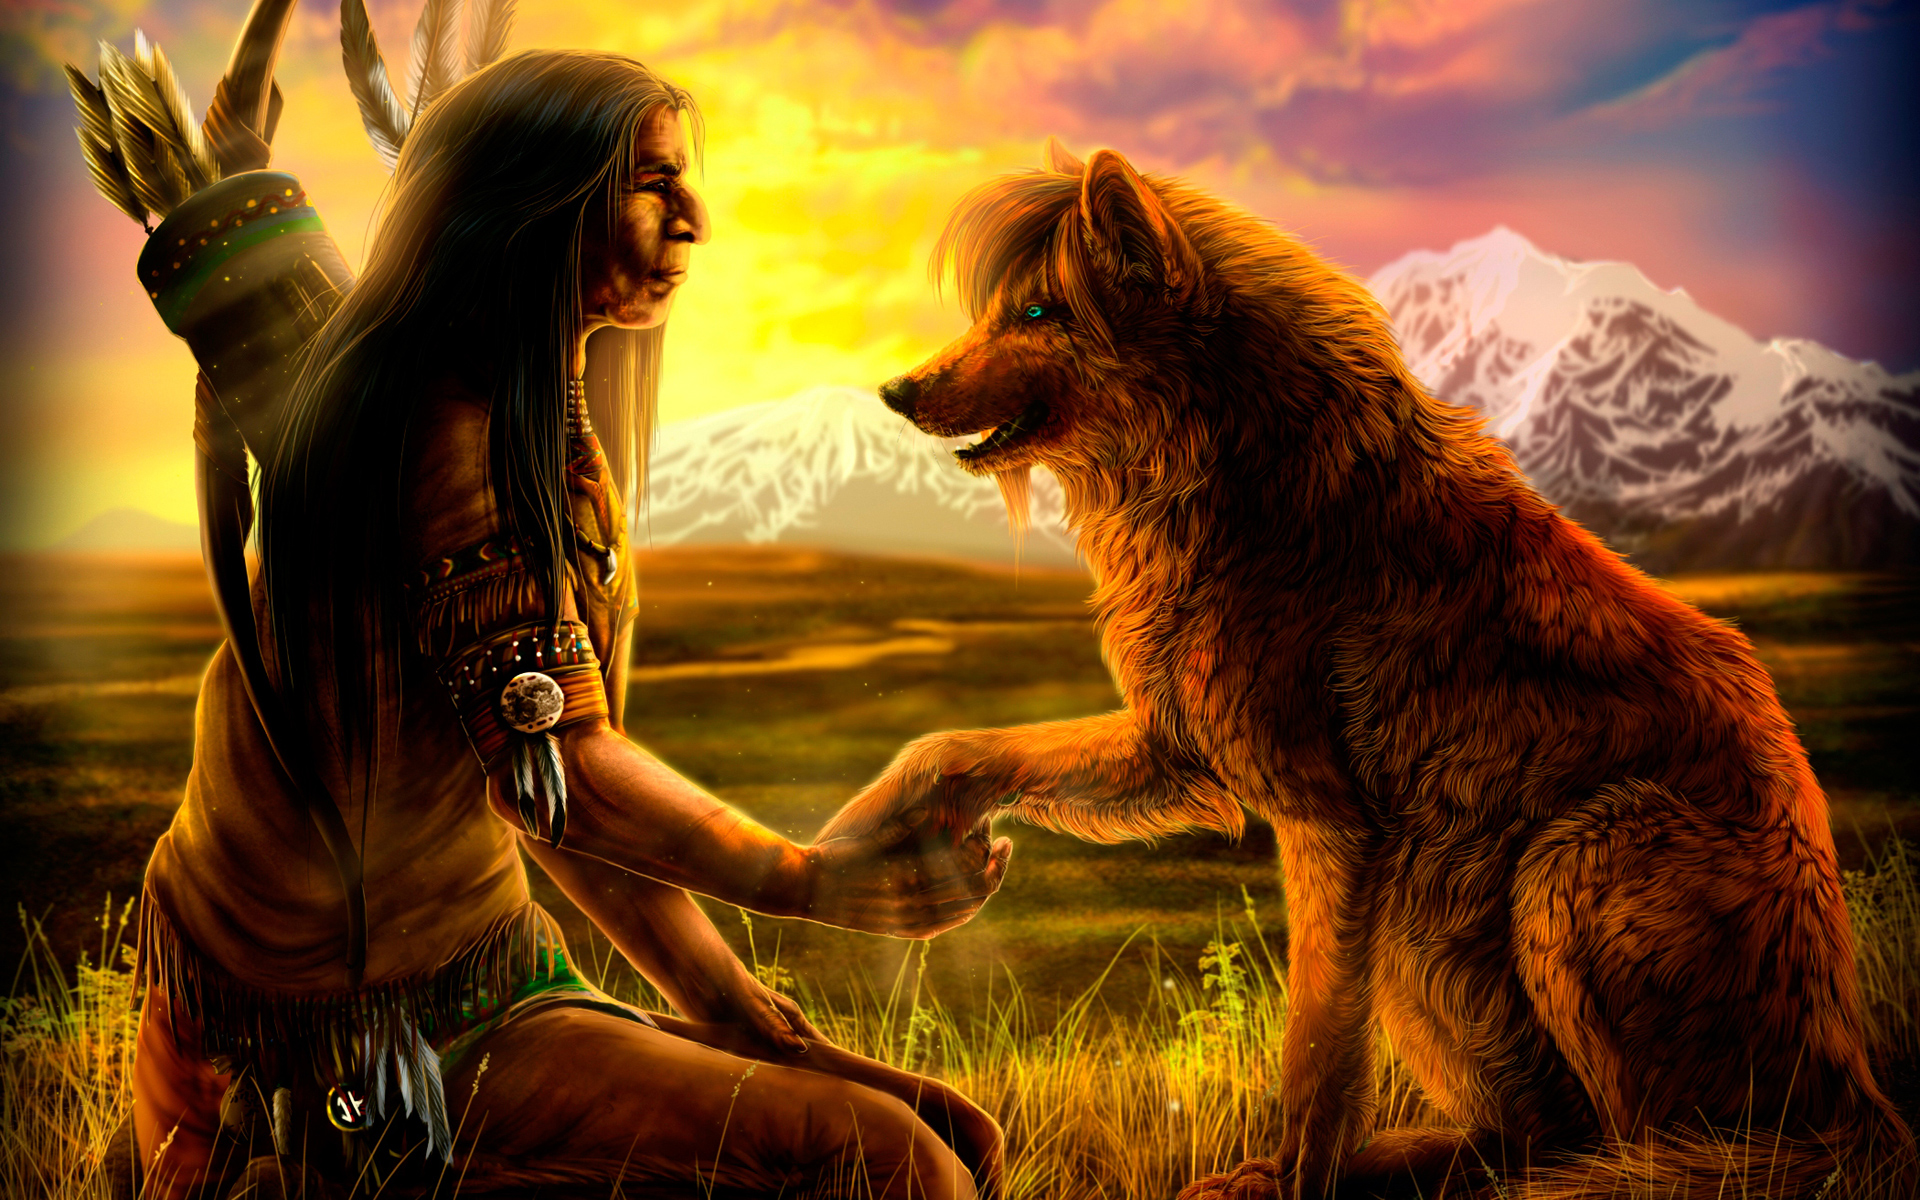 Indians images Native American wallpaper photos 34175373 1920x1200